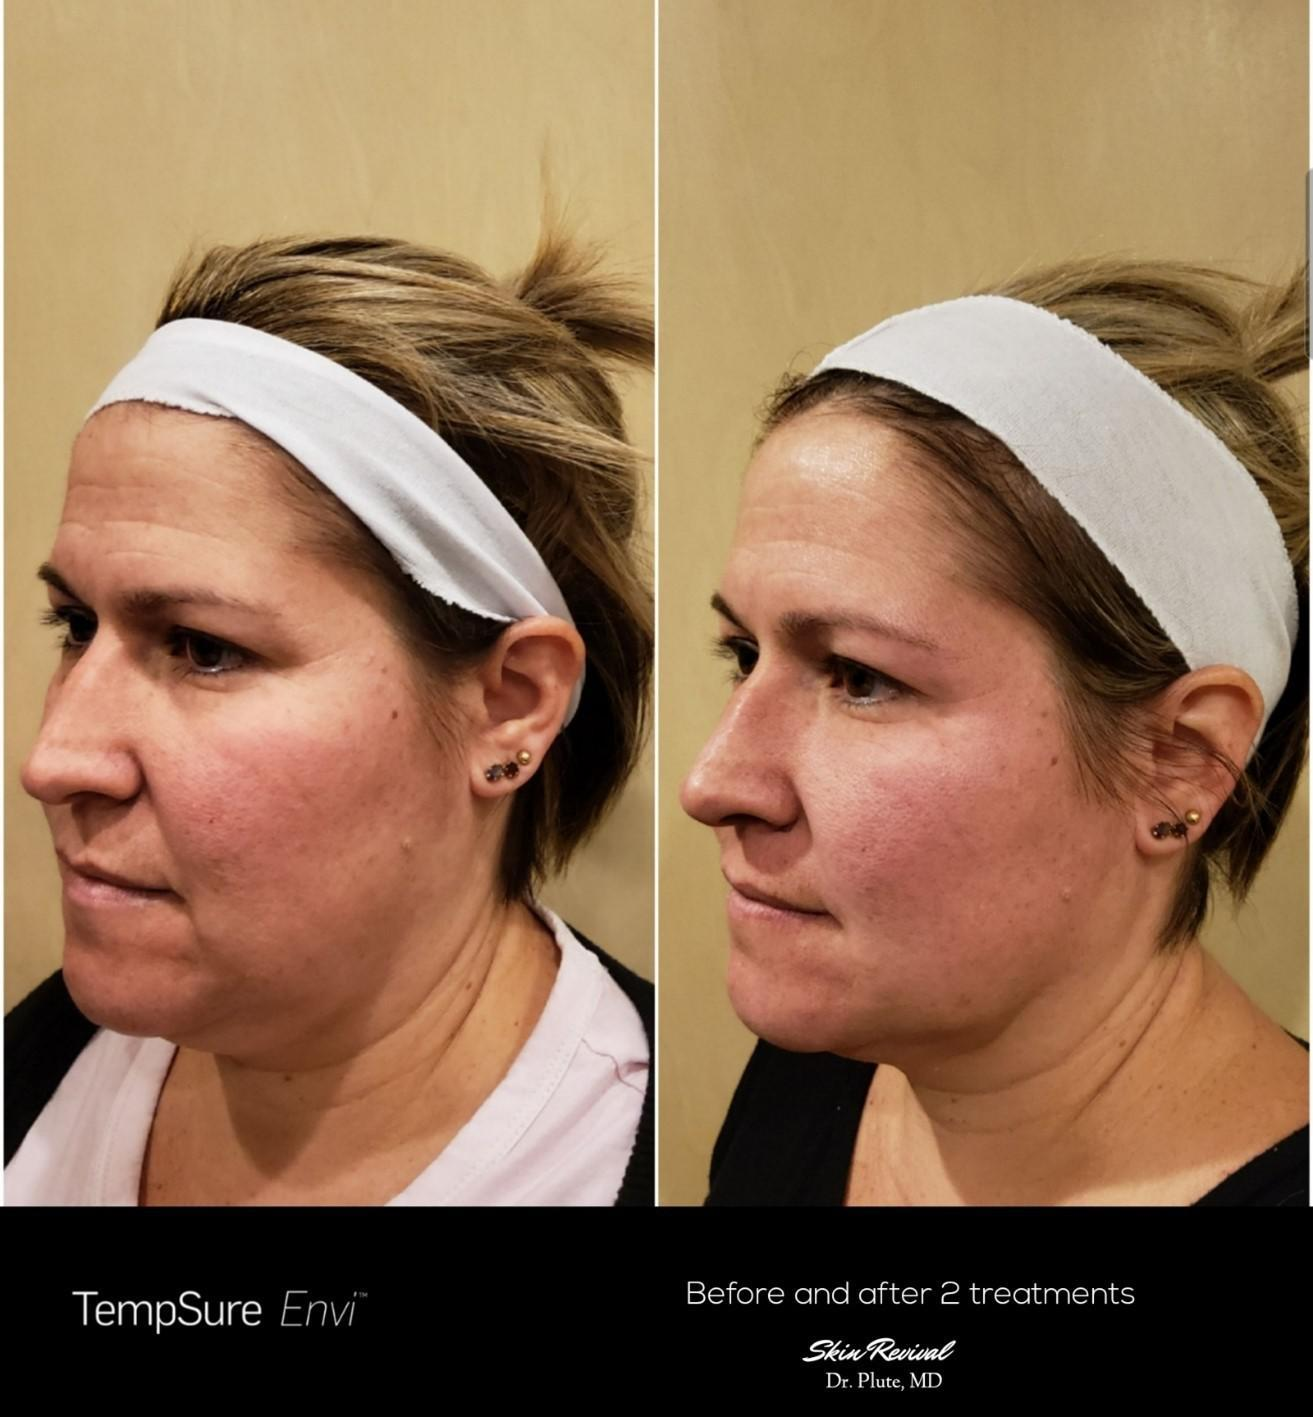 Gallery image about Facial Skin Tightening